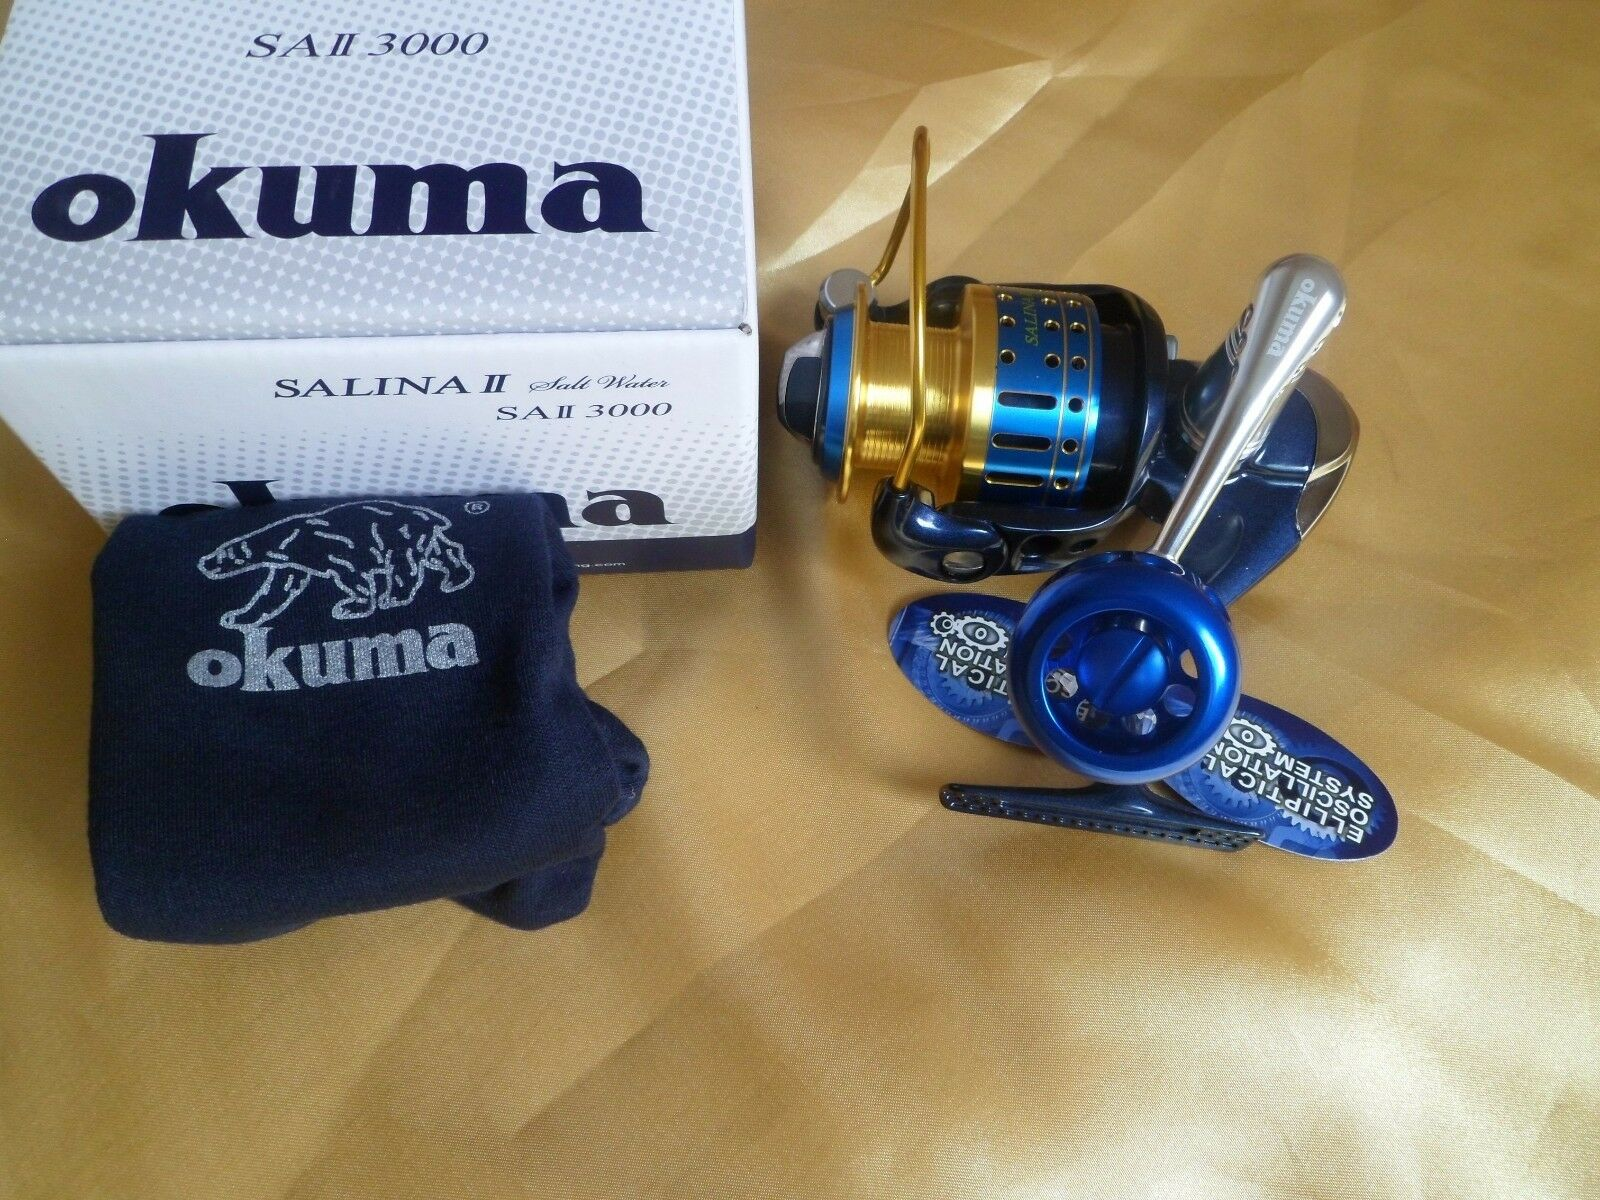 Okuma SALINA II 3000 Spinning Reel 23kg  drag Full Metal manufacture - New  big discount prices